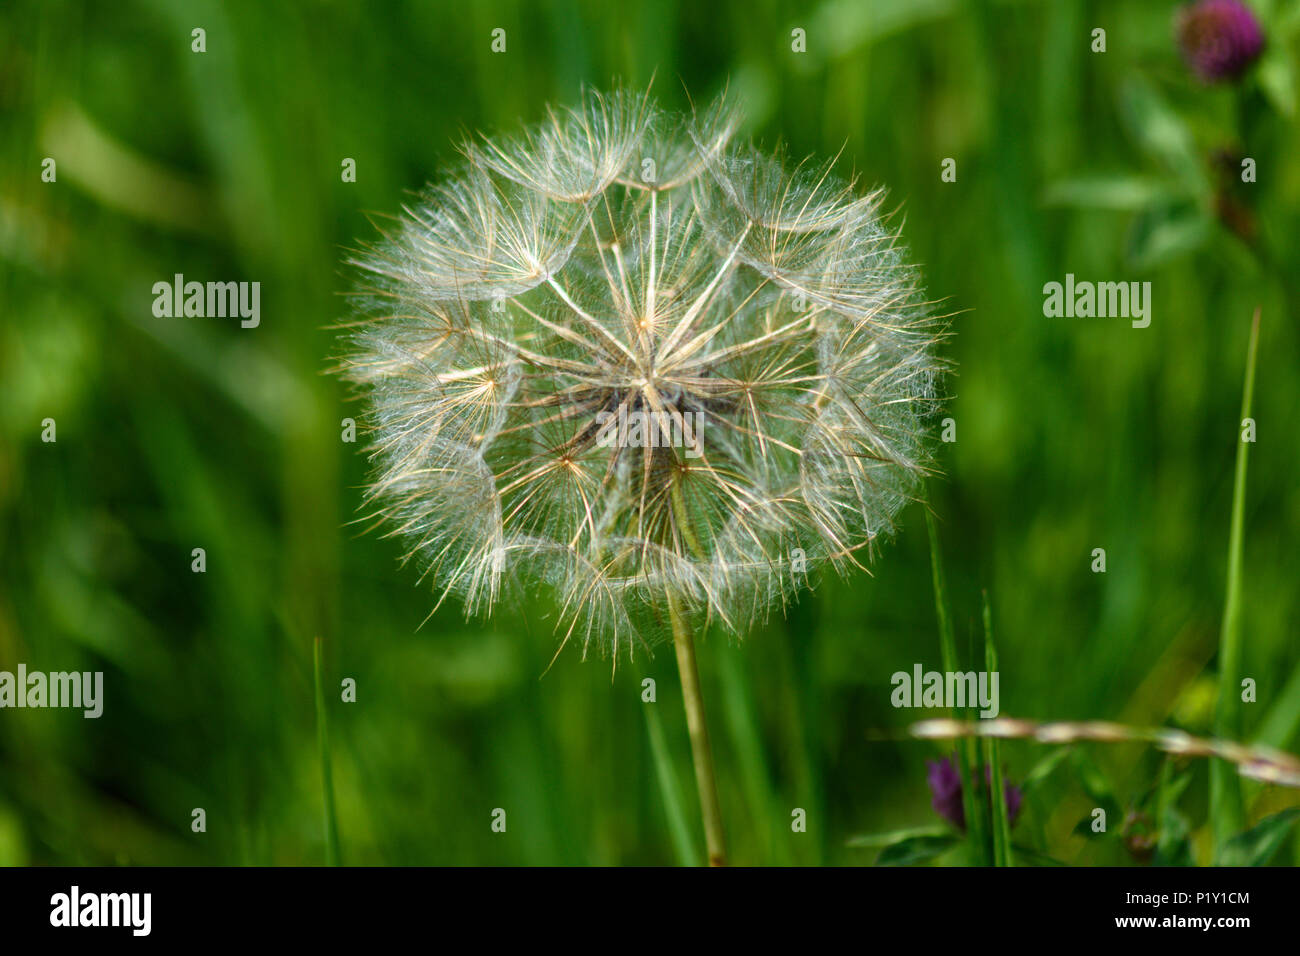 Goats beard 'clock' seedhead fully open waiting for the wind - Stock Image